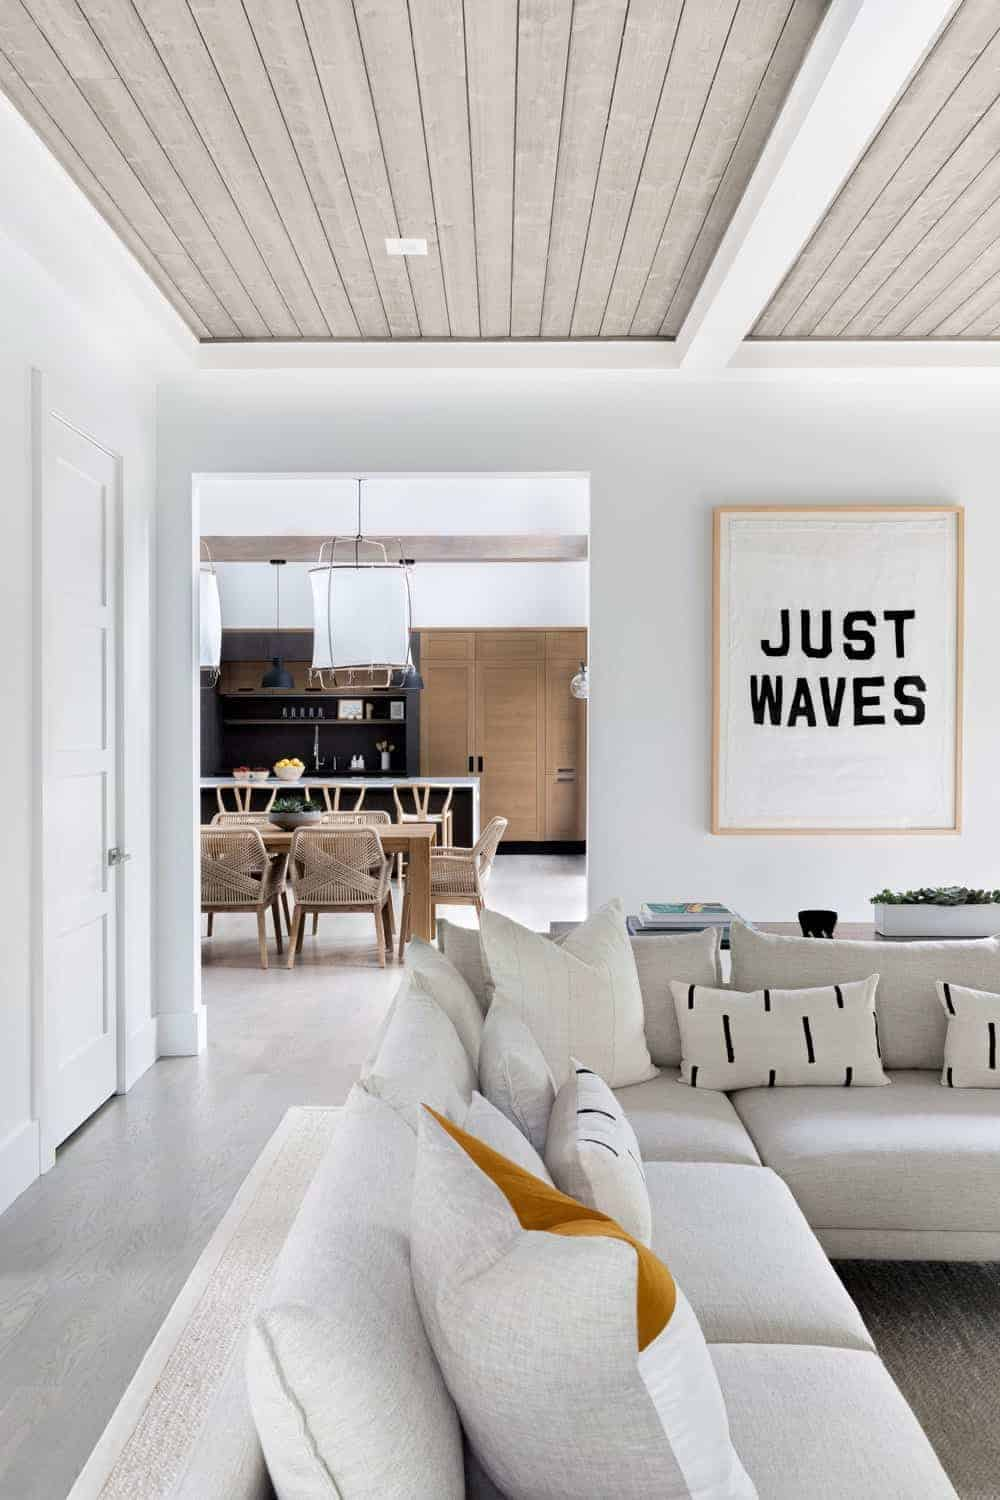 The living room features wooden ceiling with concrete beams along with white walls surrounding the area.